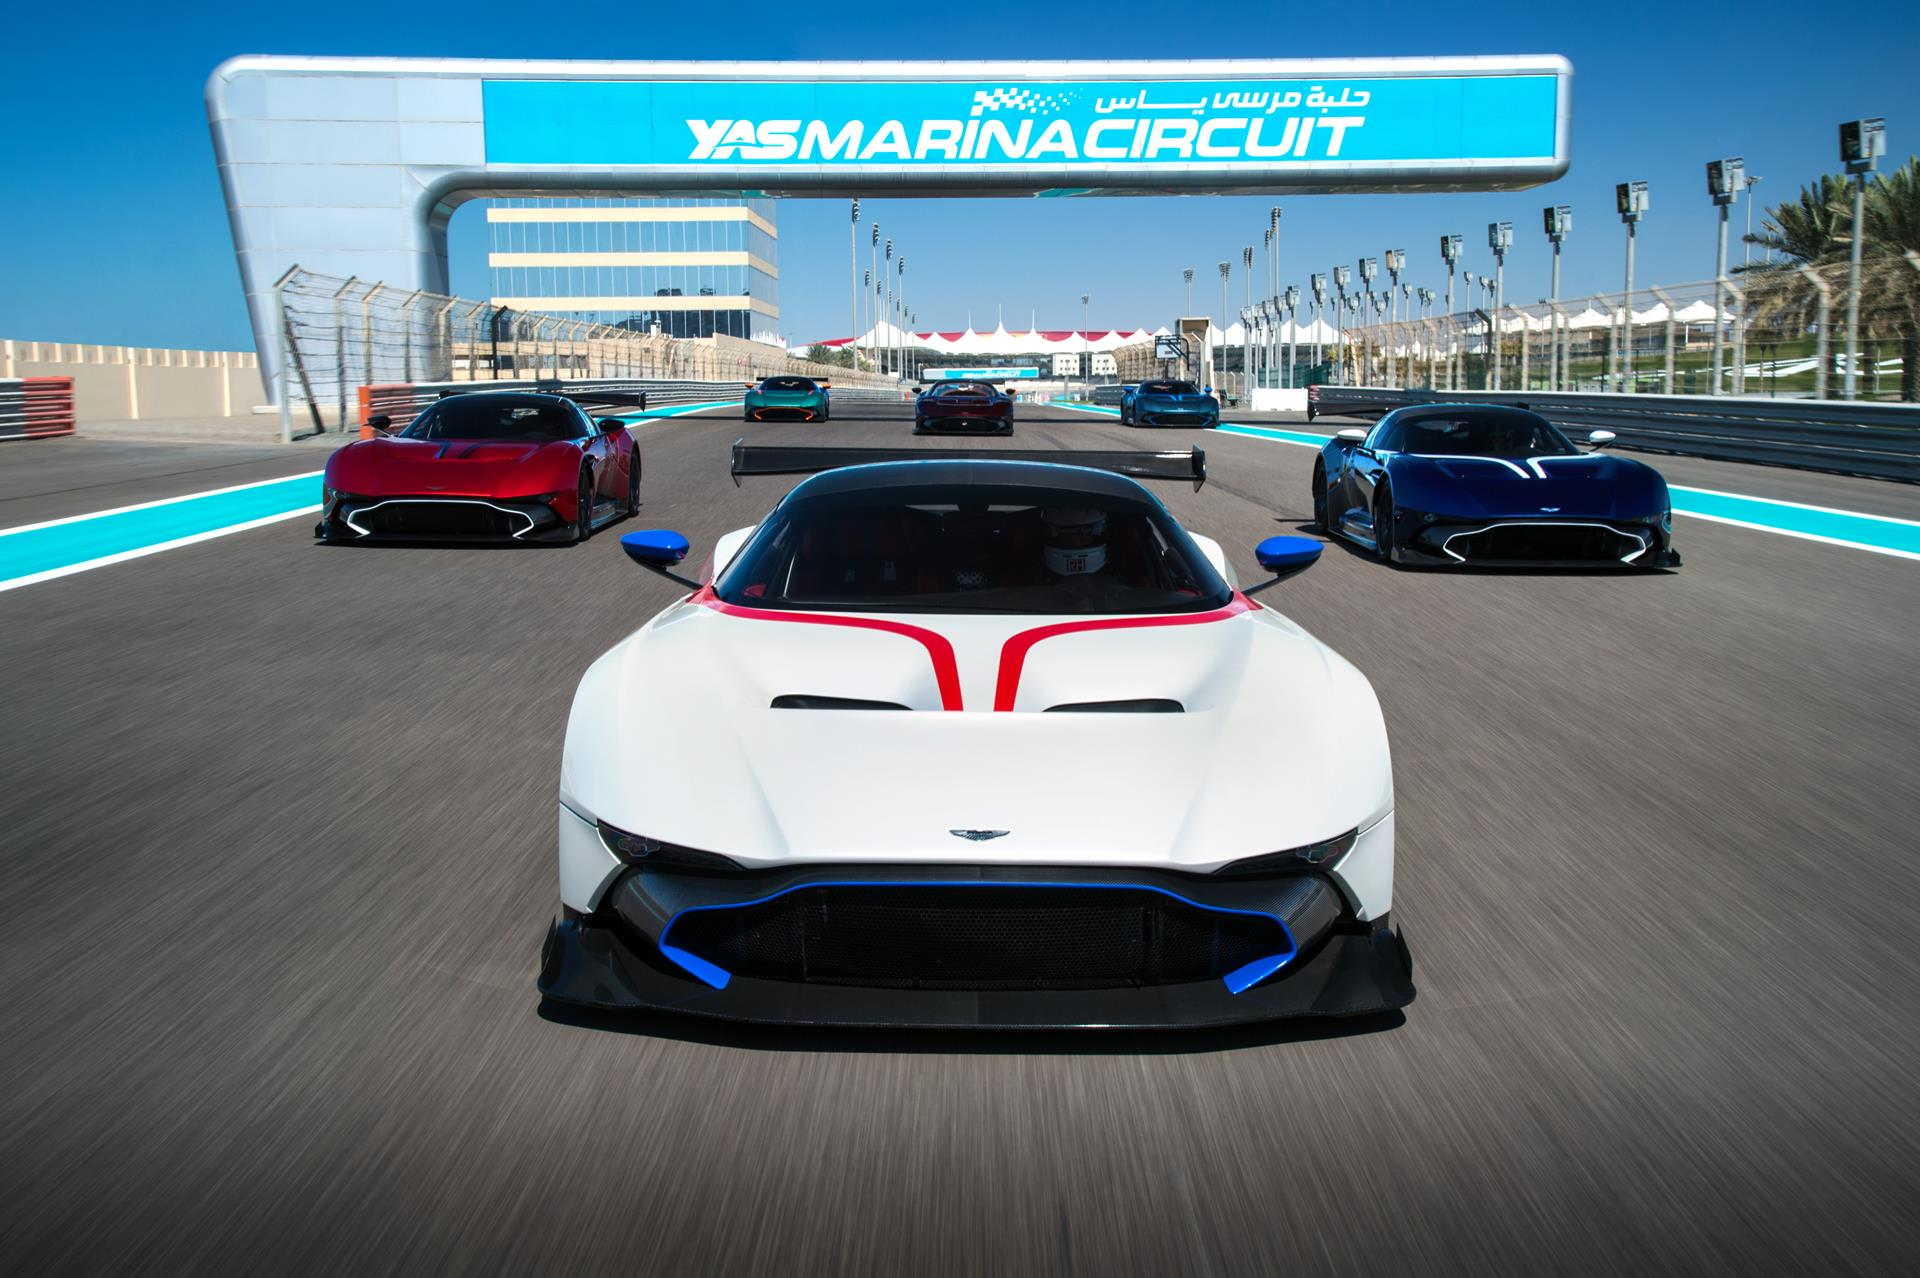 2015 Aston Martin Vulcan News And Information Research And Pricing